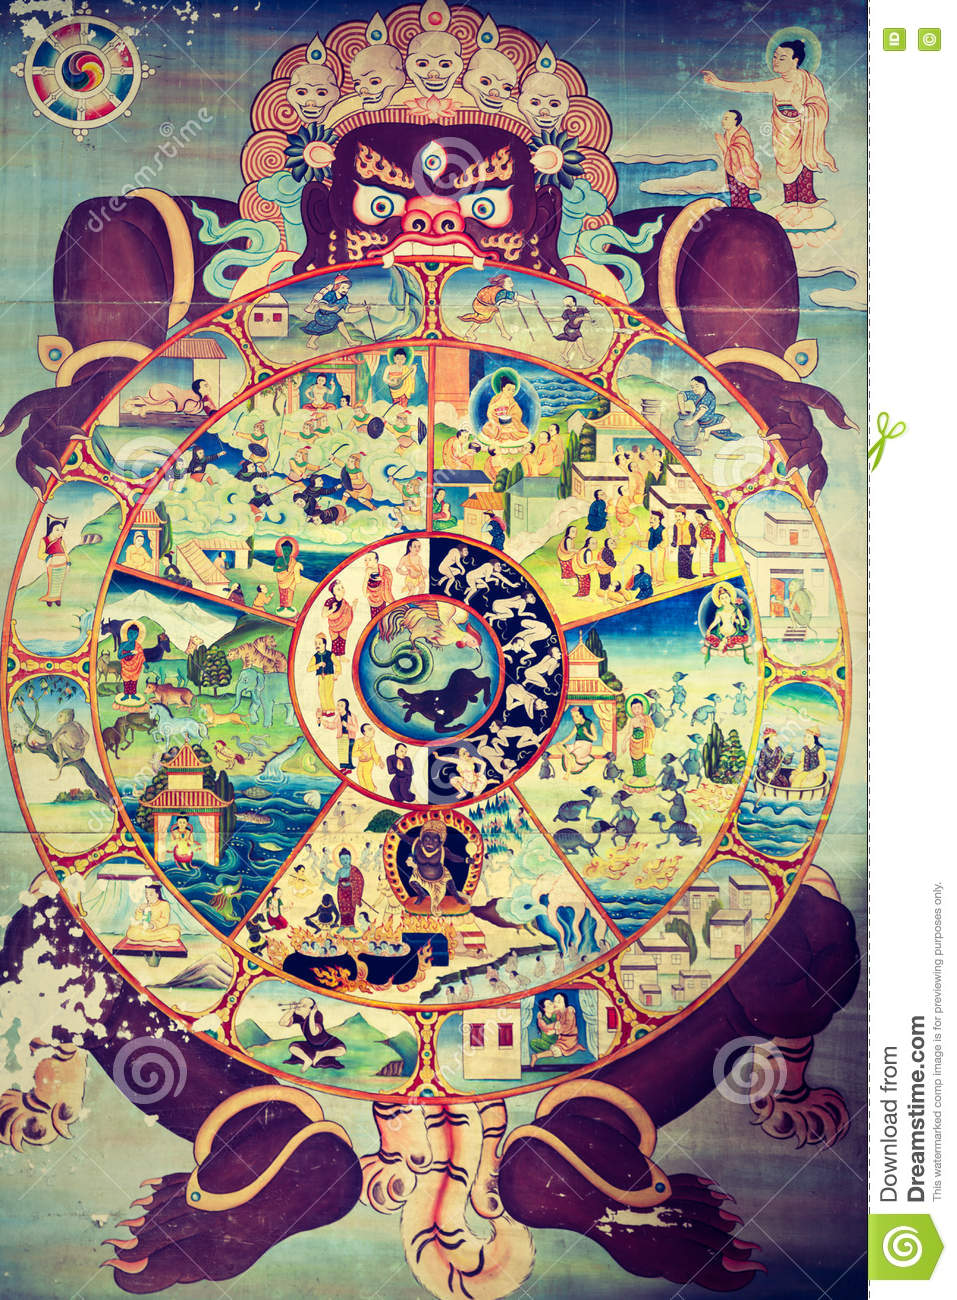 Religious Symbol Of The Cycle Of Life In The Buddhist Religion Stock Image Image Of Culture Buddhist 81408289